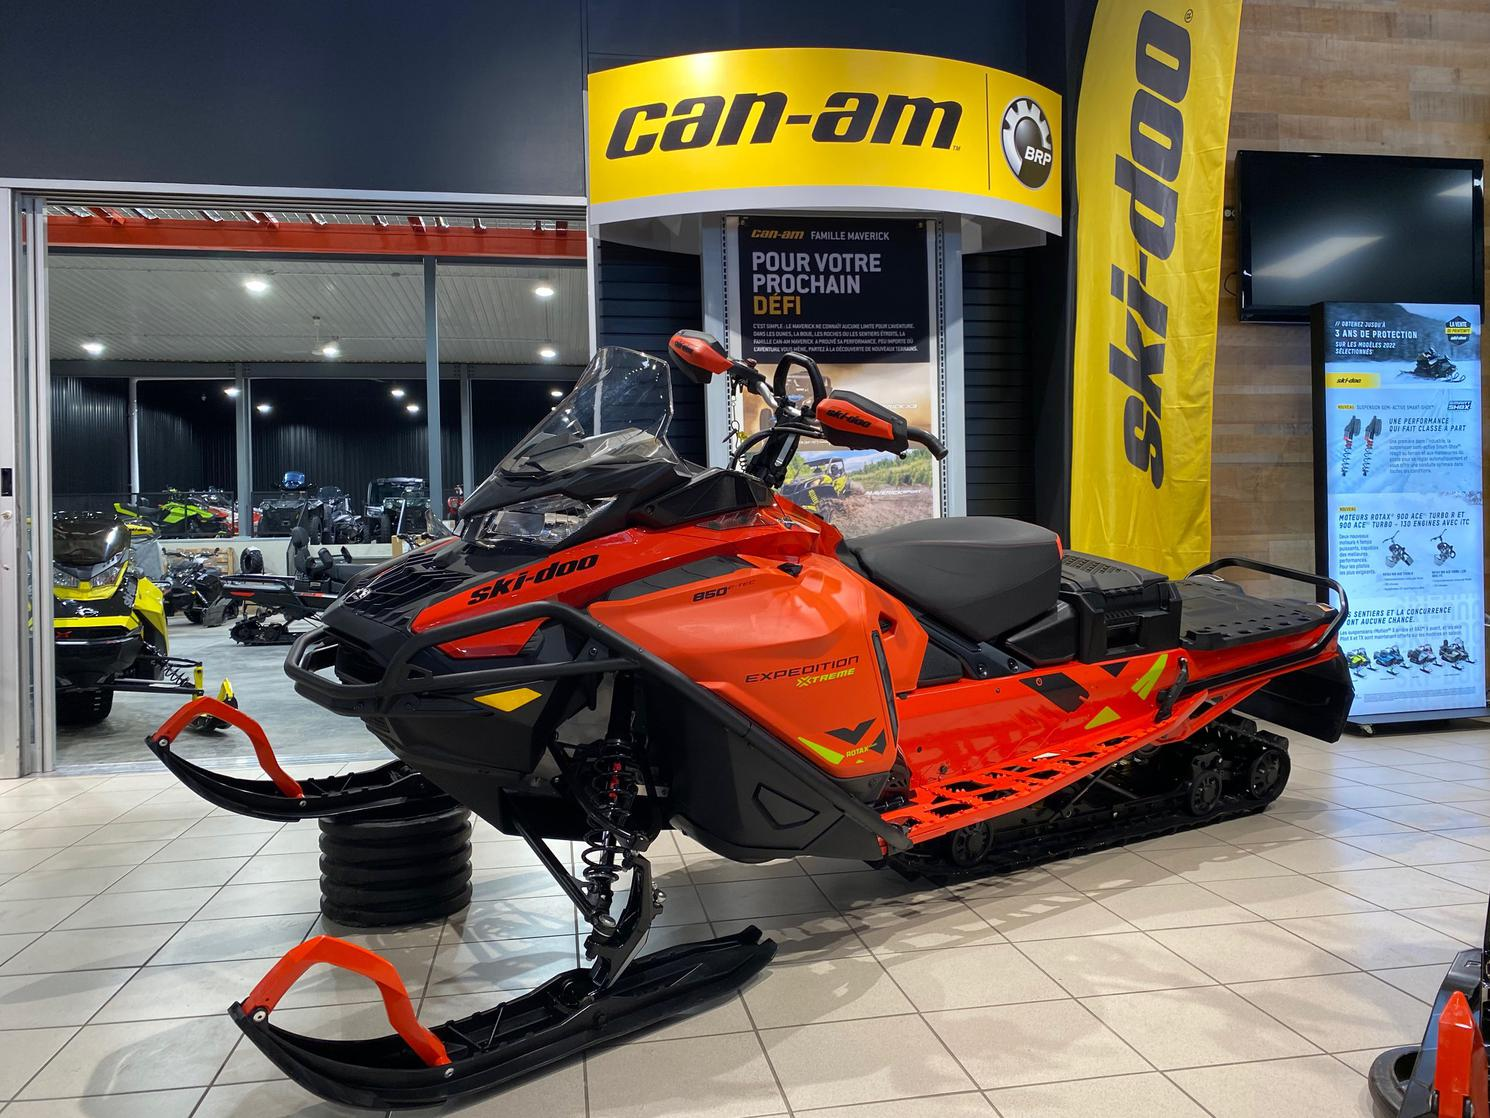 2021 Ski-Doo Expedition XTREME 850